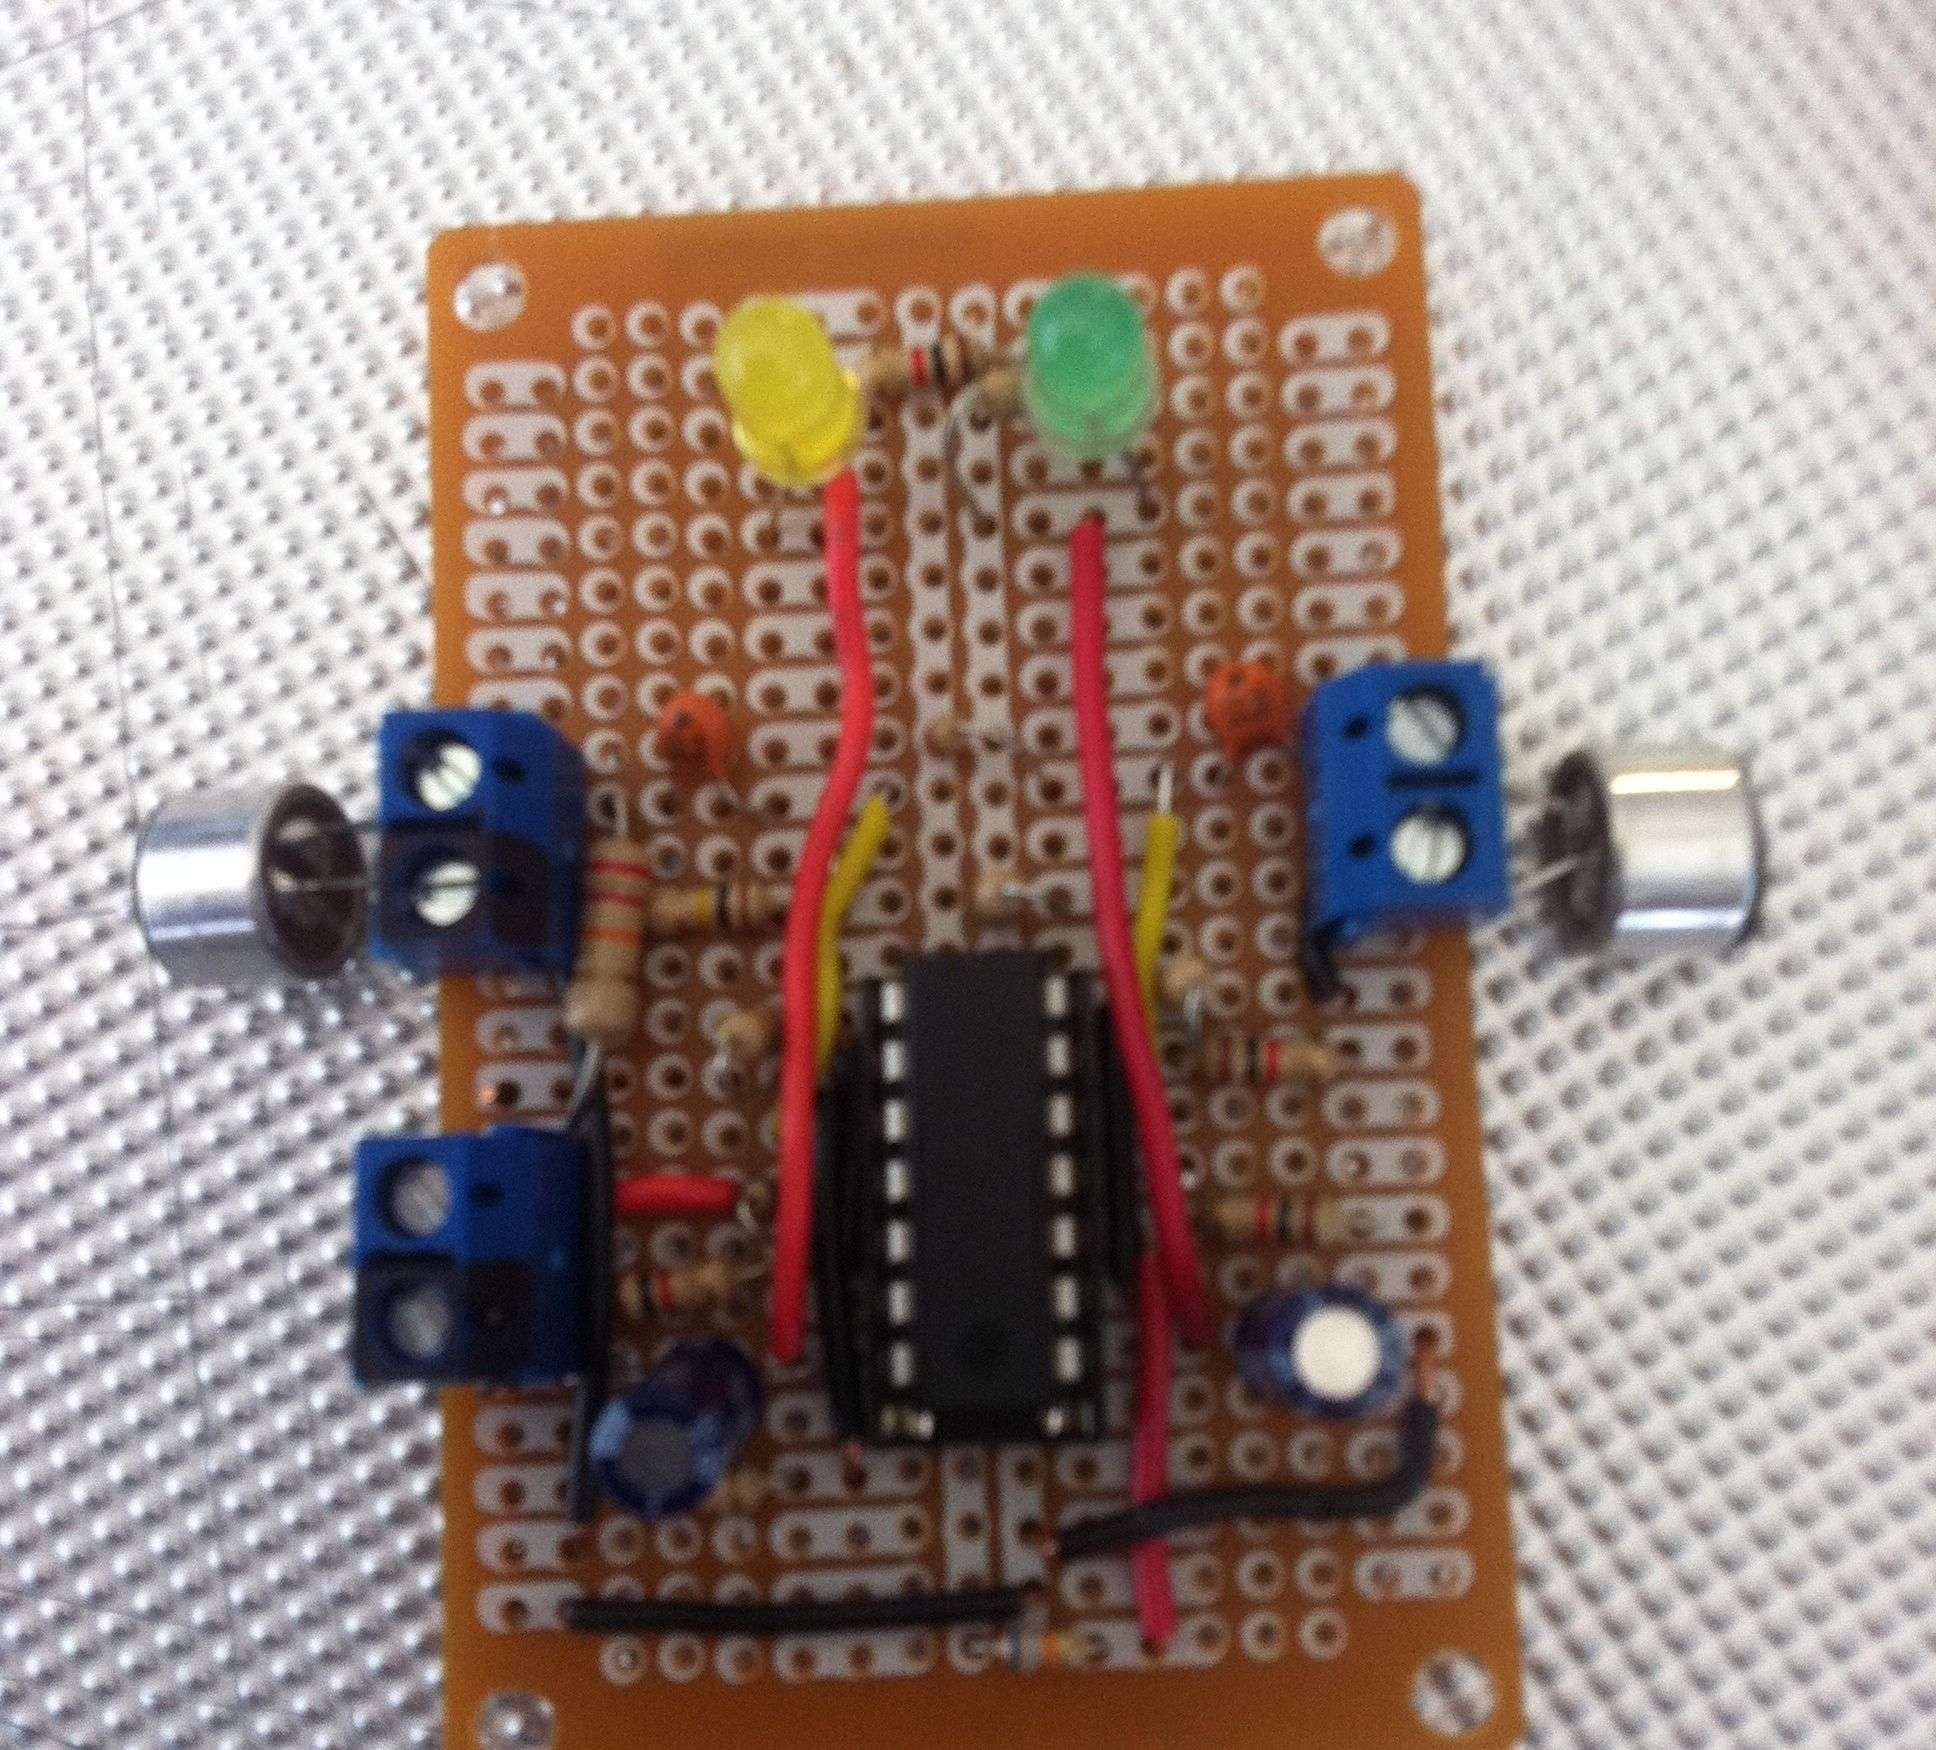 Sound Sensor Using A Lm324 Hacks Pinterest The We Will Use In This Circuit Is Tcs3200 Color